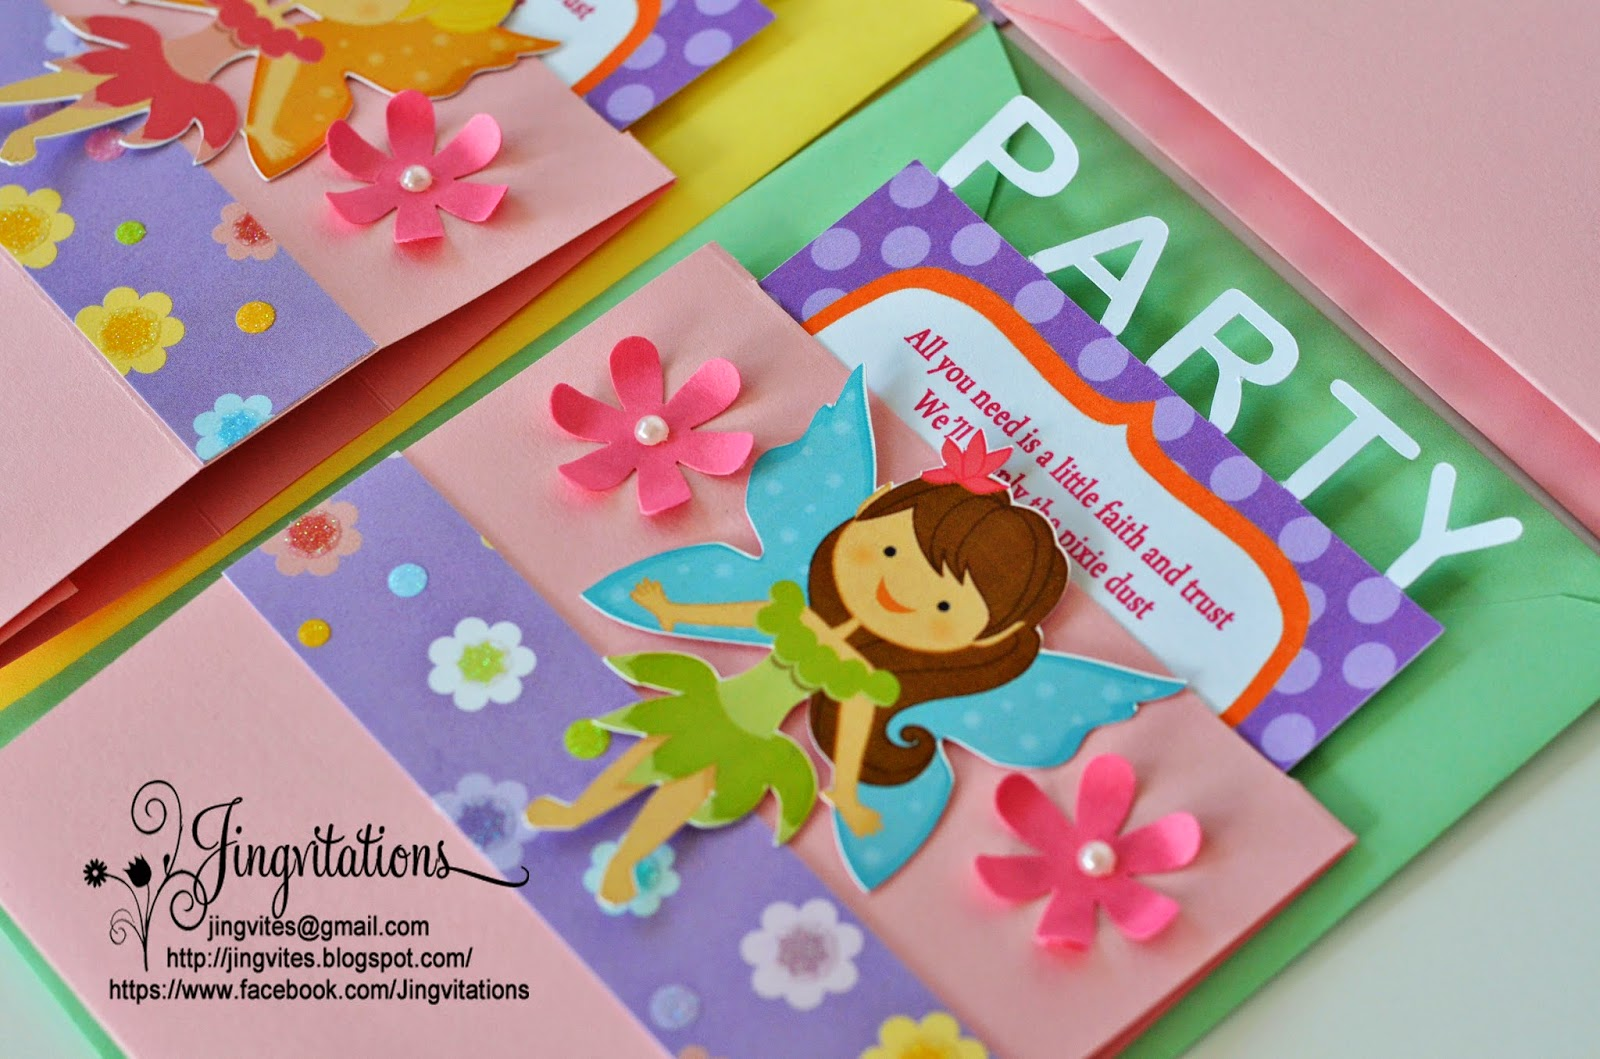 jingvitations tinkerbell pixie hollow fairy invitations, Baby shower